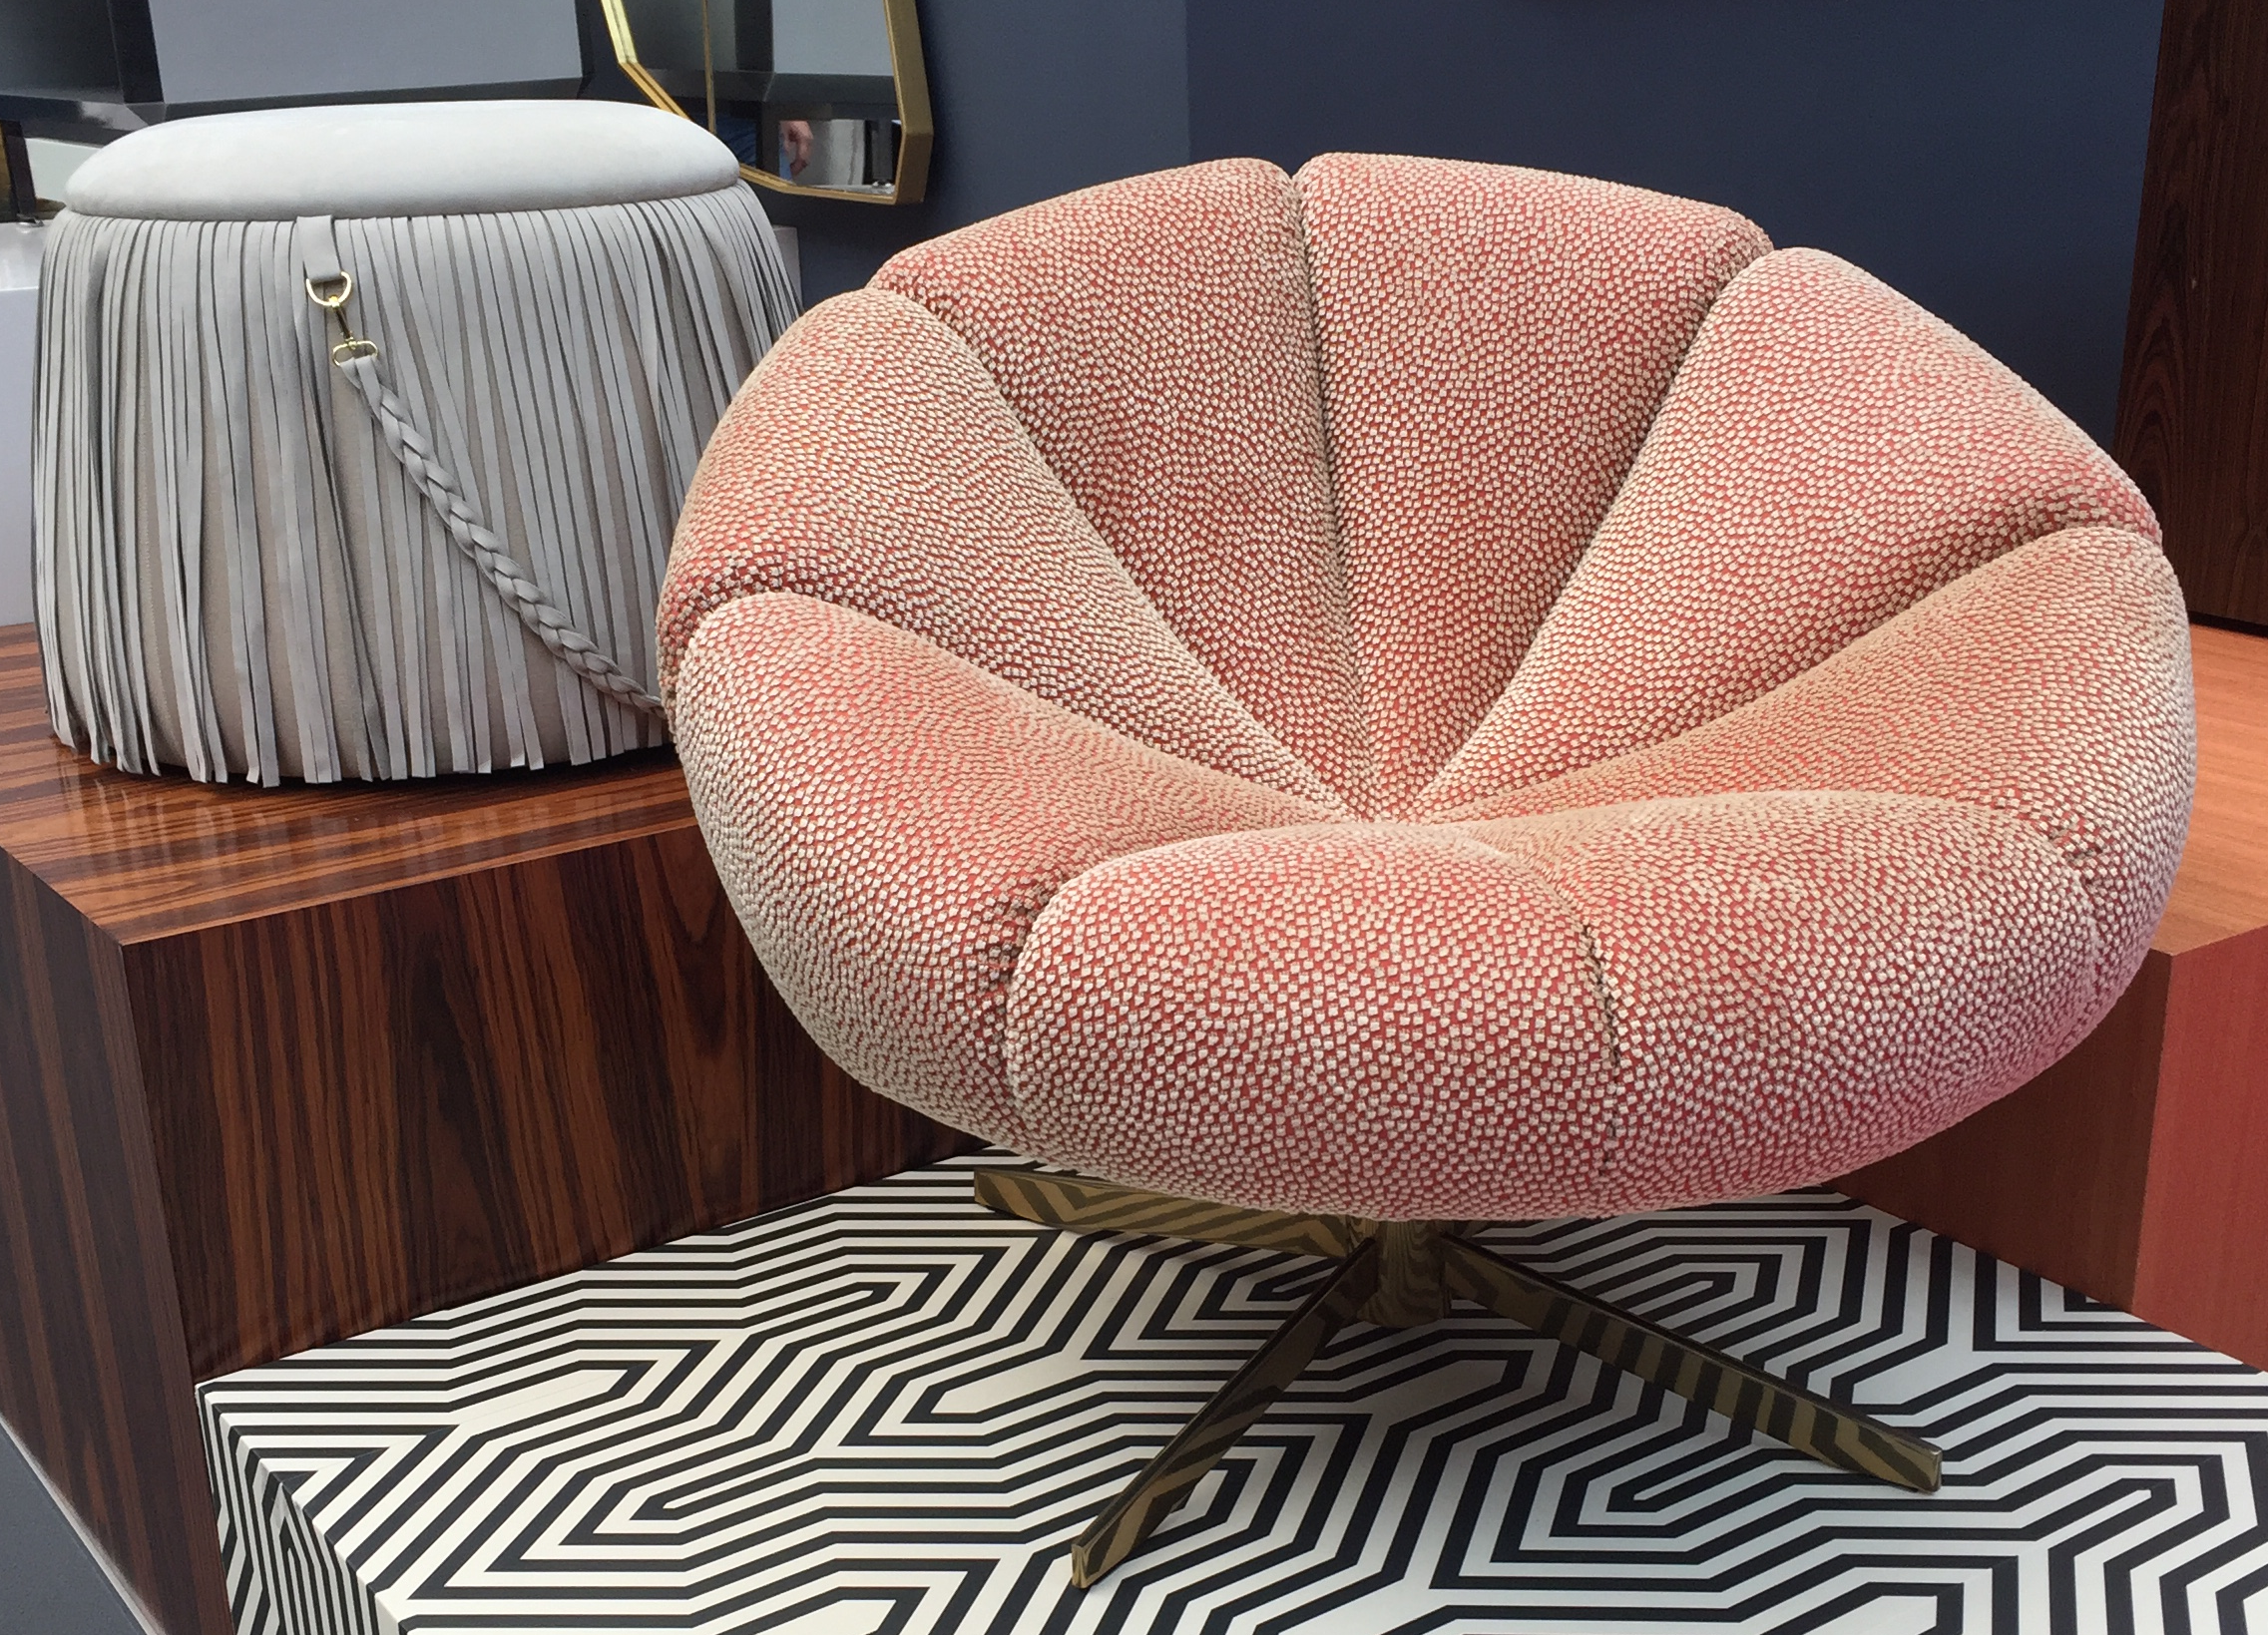 Groovy seating by   Jetclass   to add a bit of glam to your home